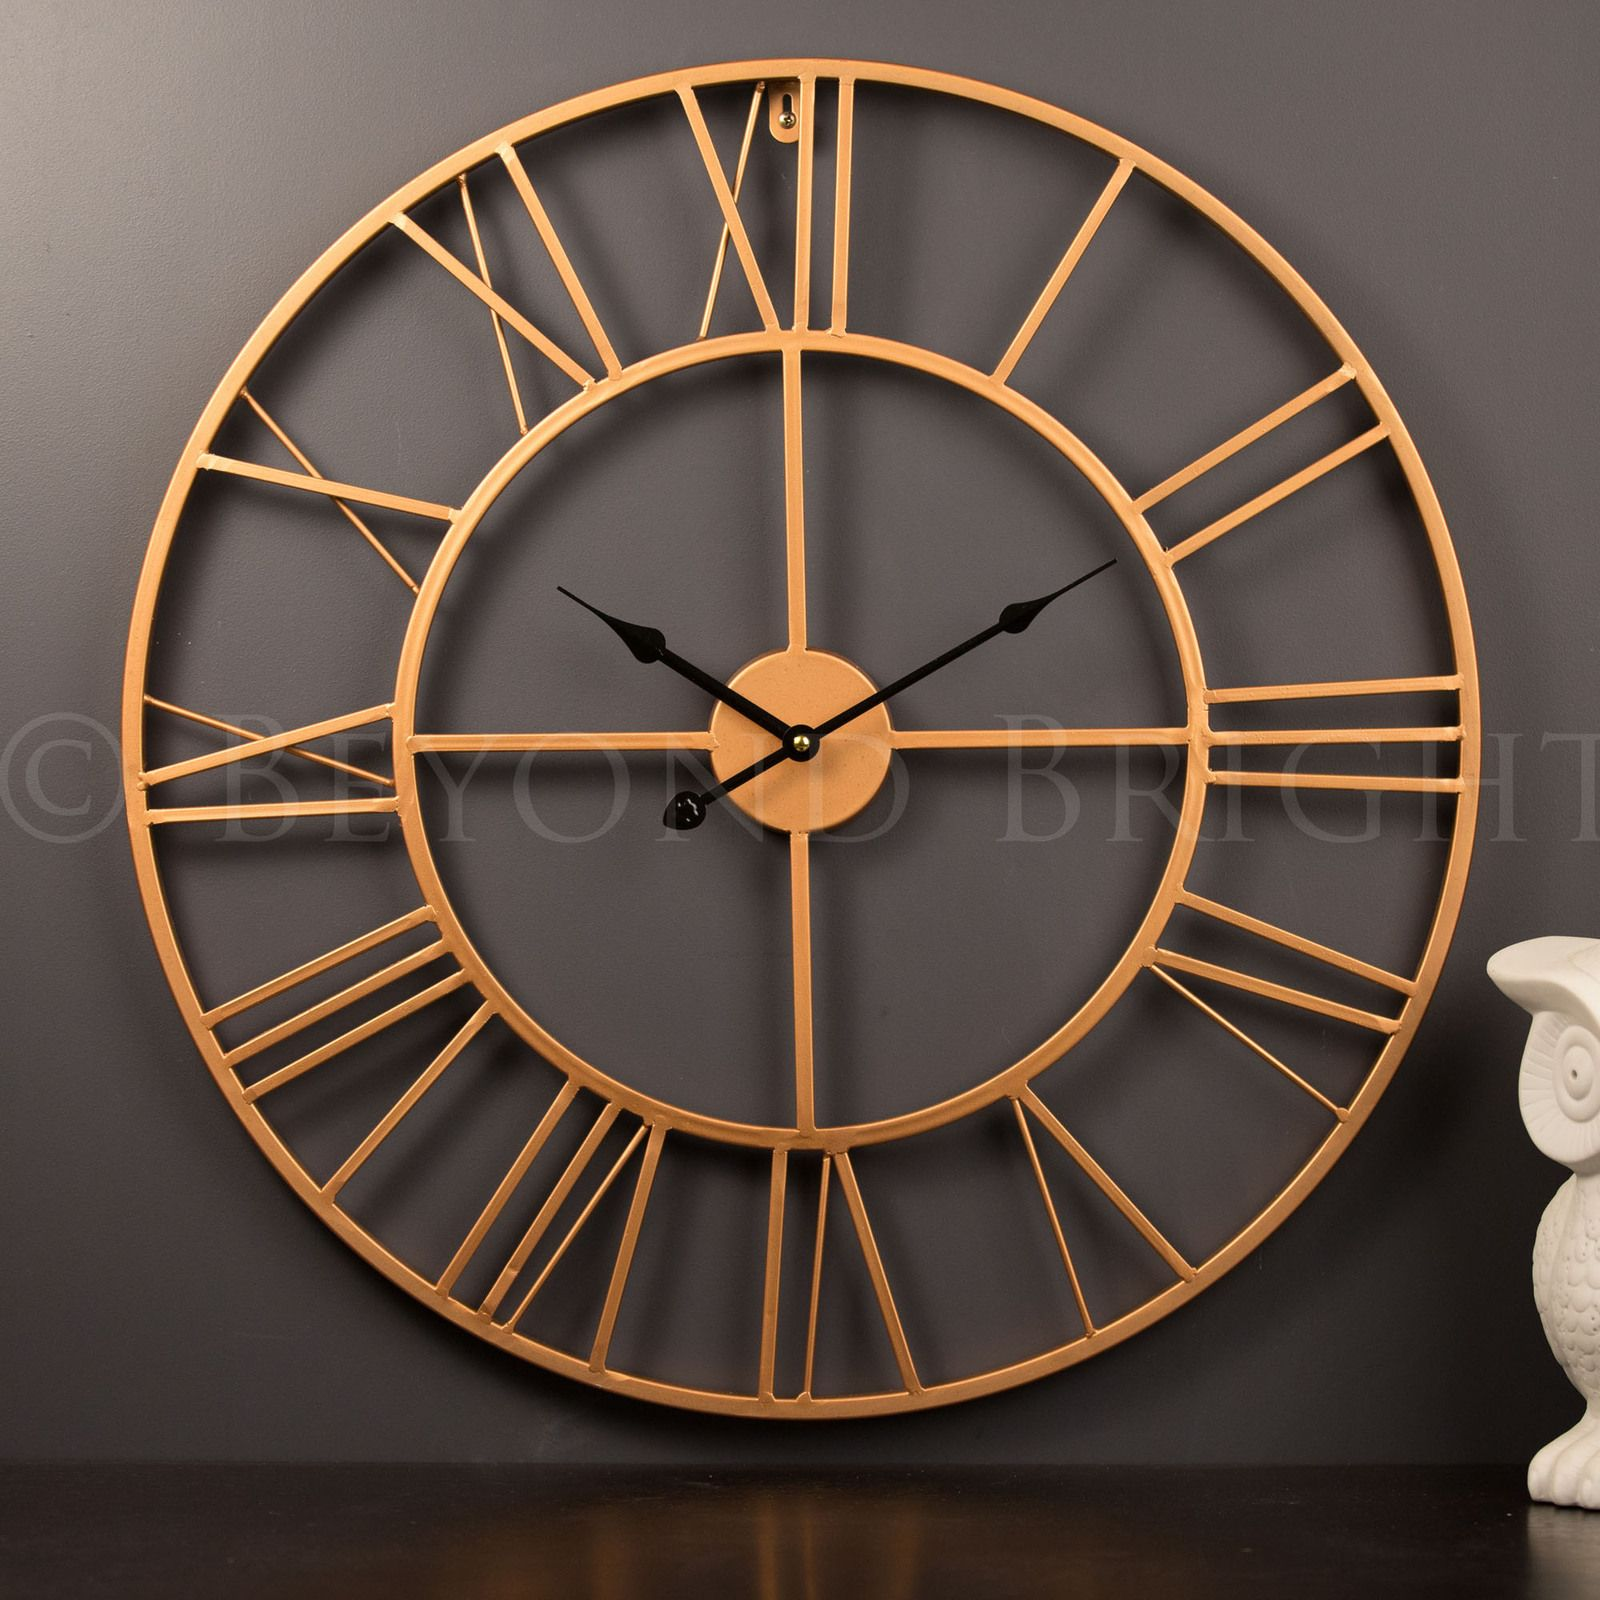 Large Wall Clock Measuring In Diameter Will Suit Any Decor From Modern  Industrial To French Provincial And Be A Statement Piece Is Sure Impress  Copper 60cm ...